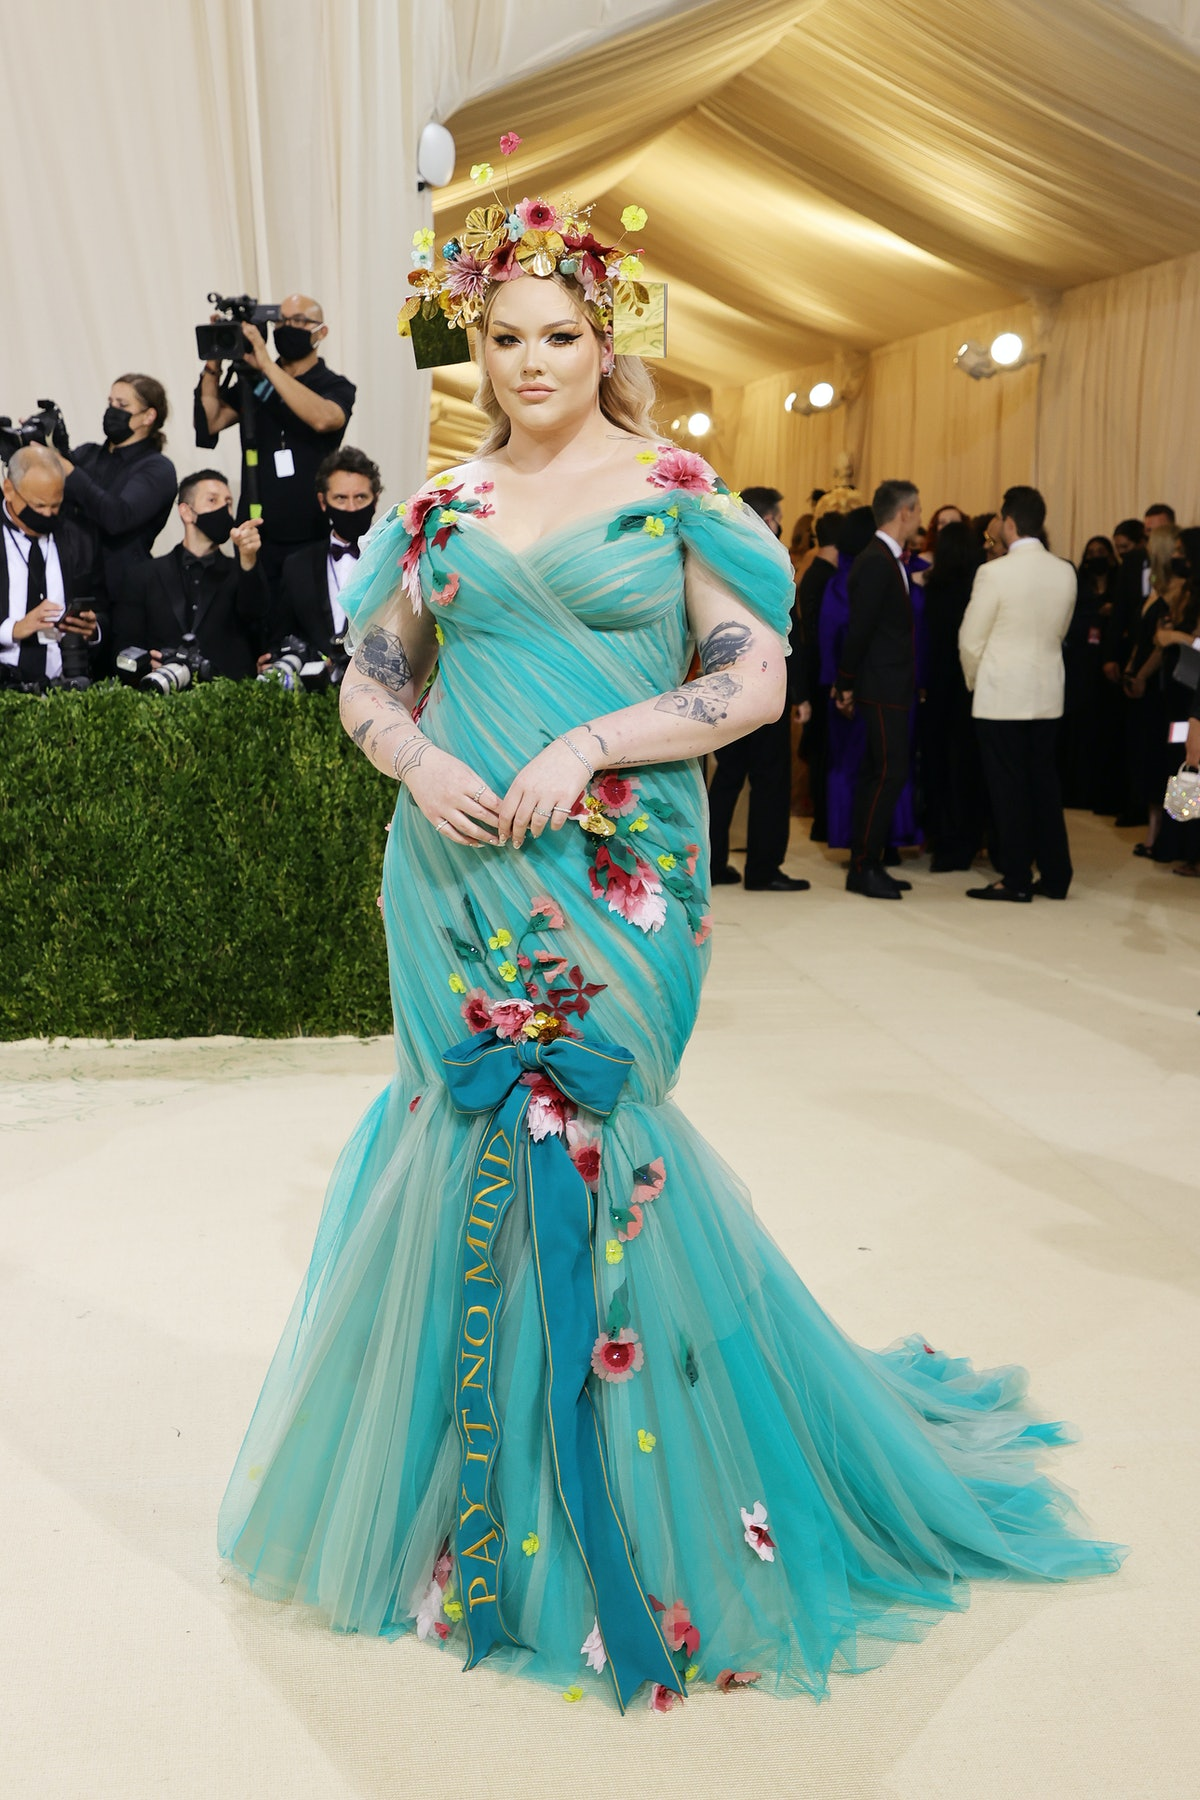 Nikkie de Jager attends The 2021 Met Gala Celebrating In America: A Lexicon Of Fashion at Metropolit...